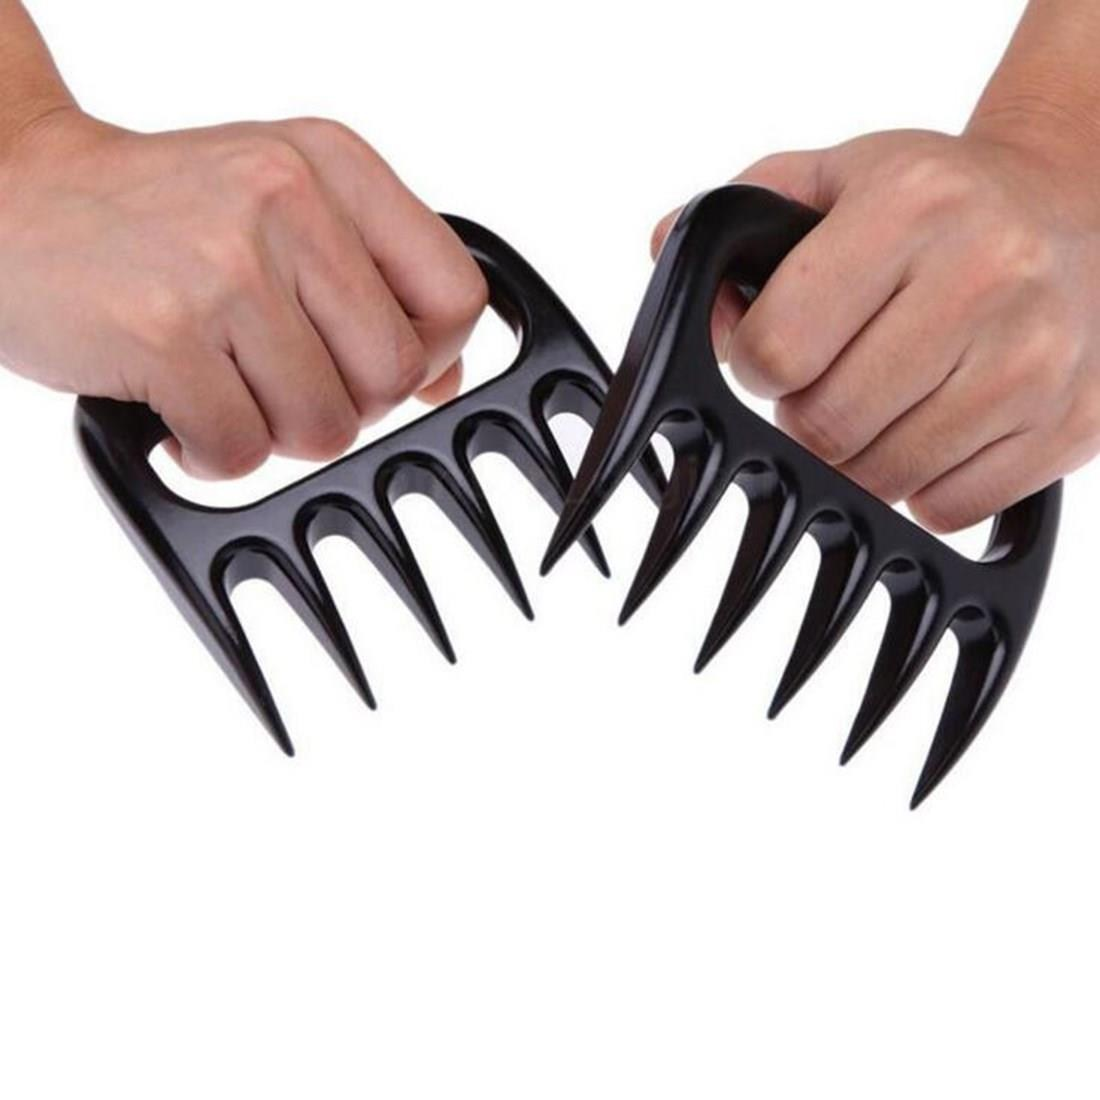 1Pair Bear Paws Claws Meat Handler Forks Tongs Pull Shred P